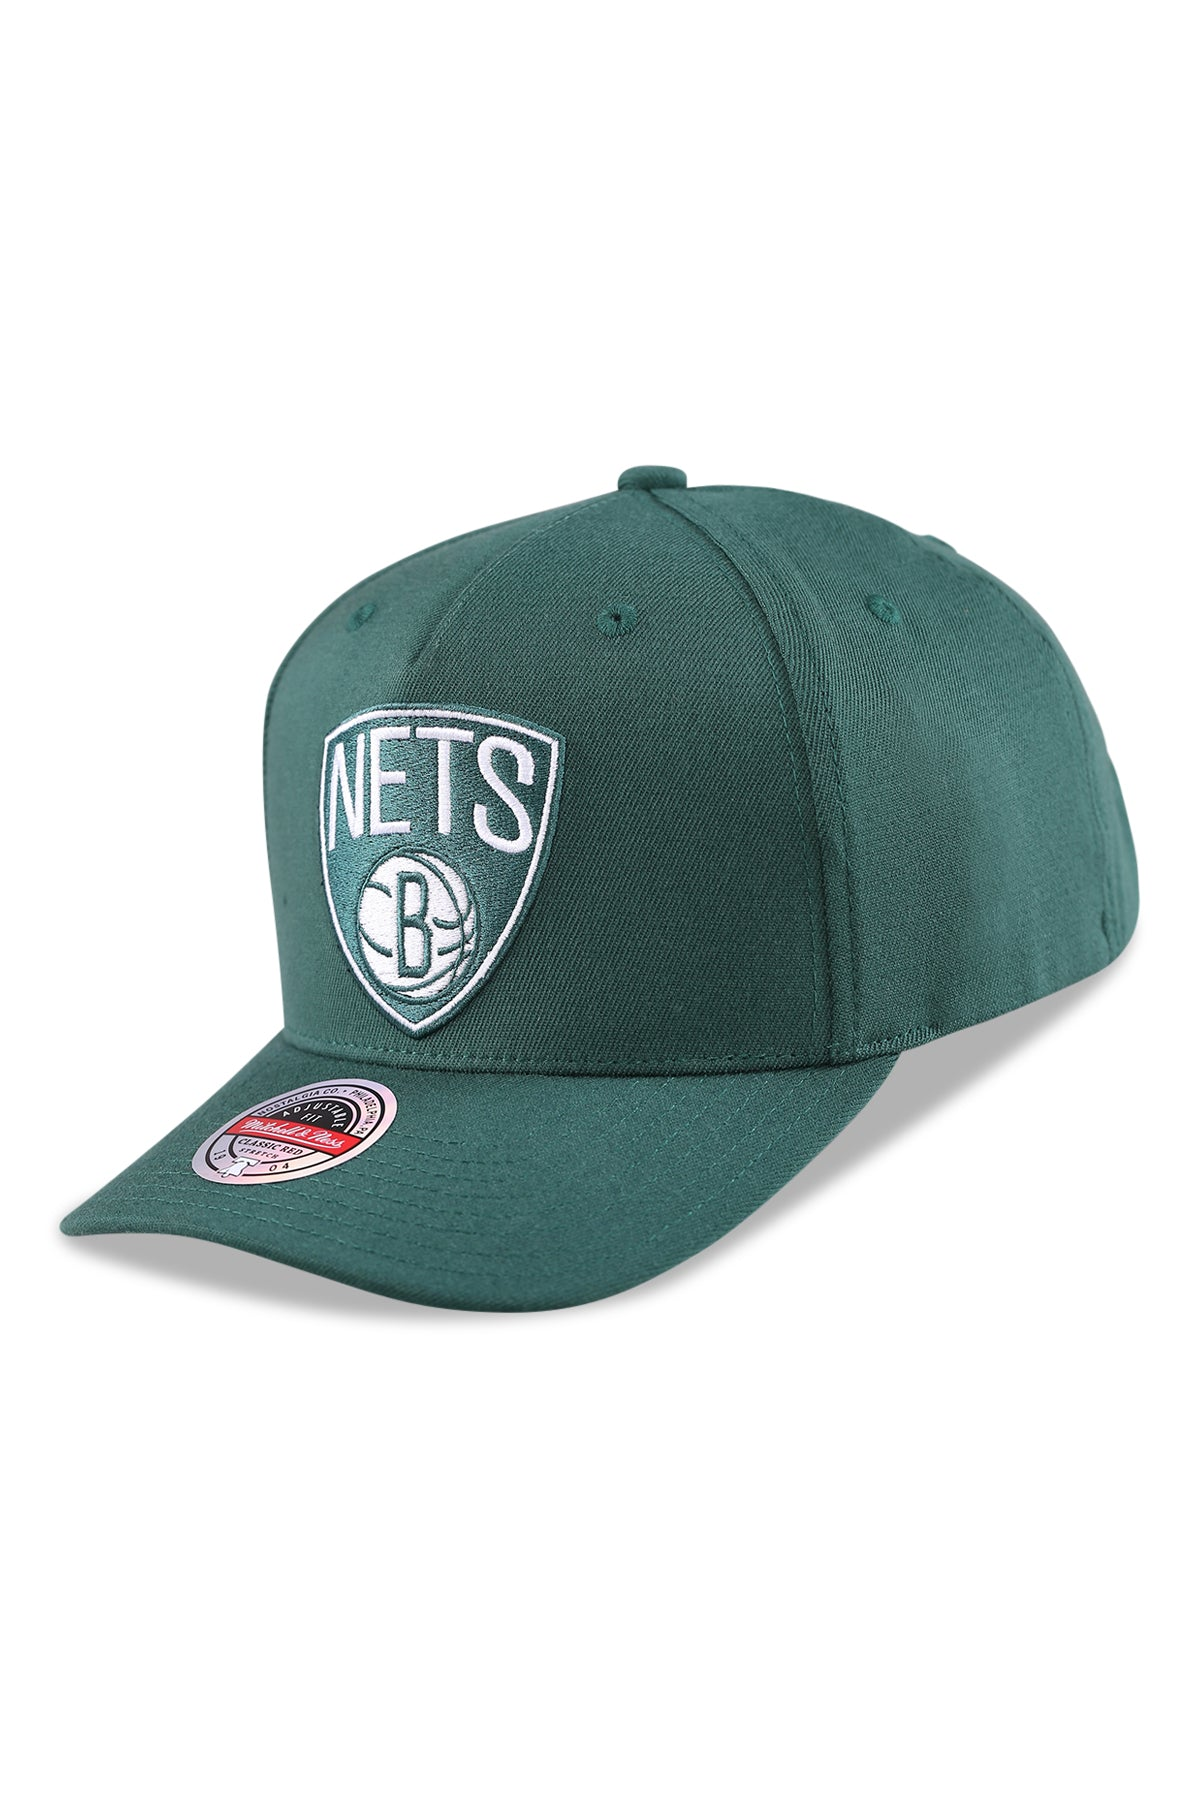 M&N Nets Clear Field Pinch Panel Dark Green Snapback Angle